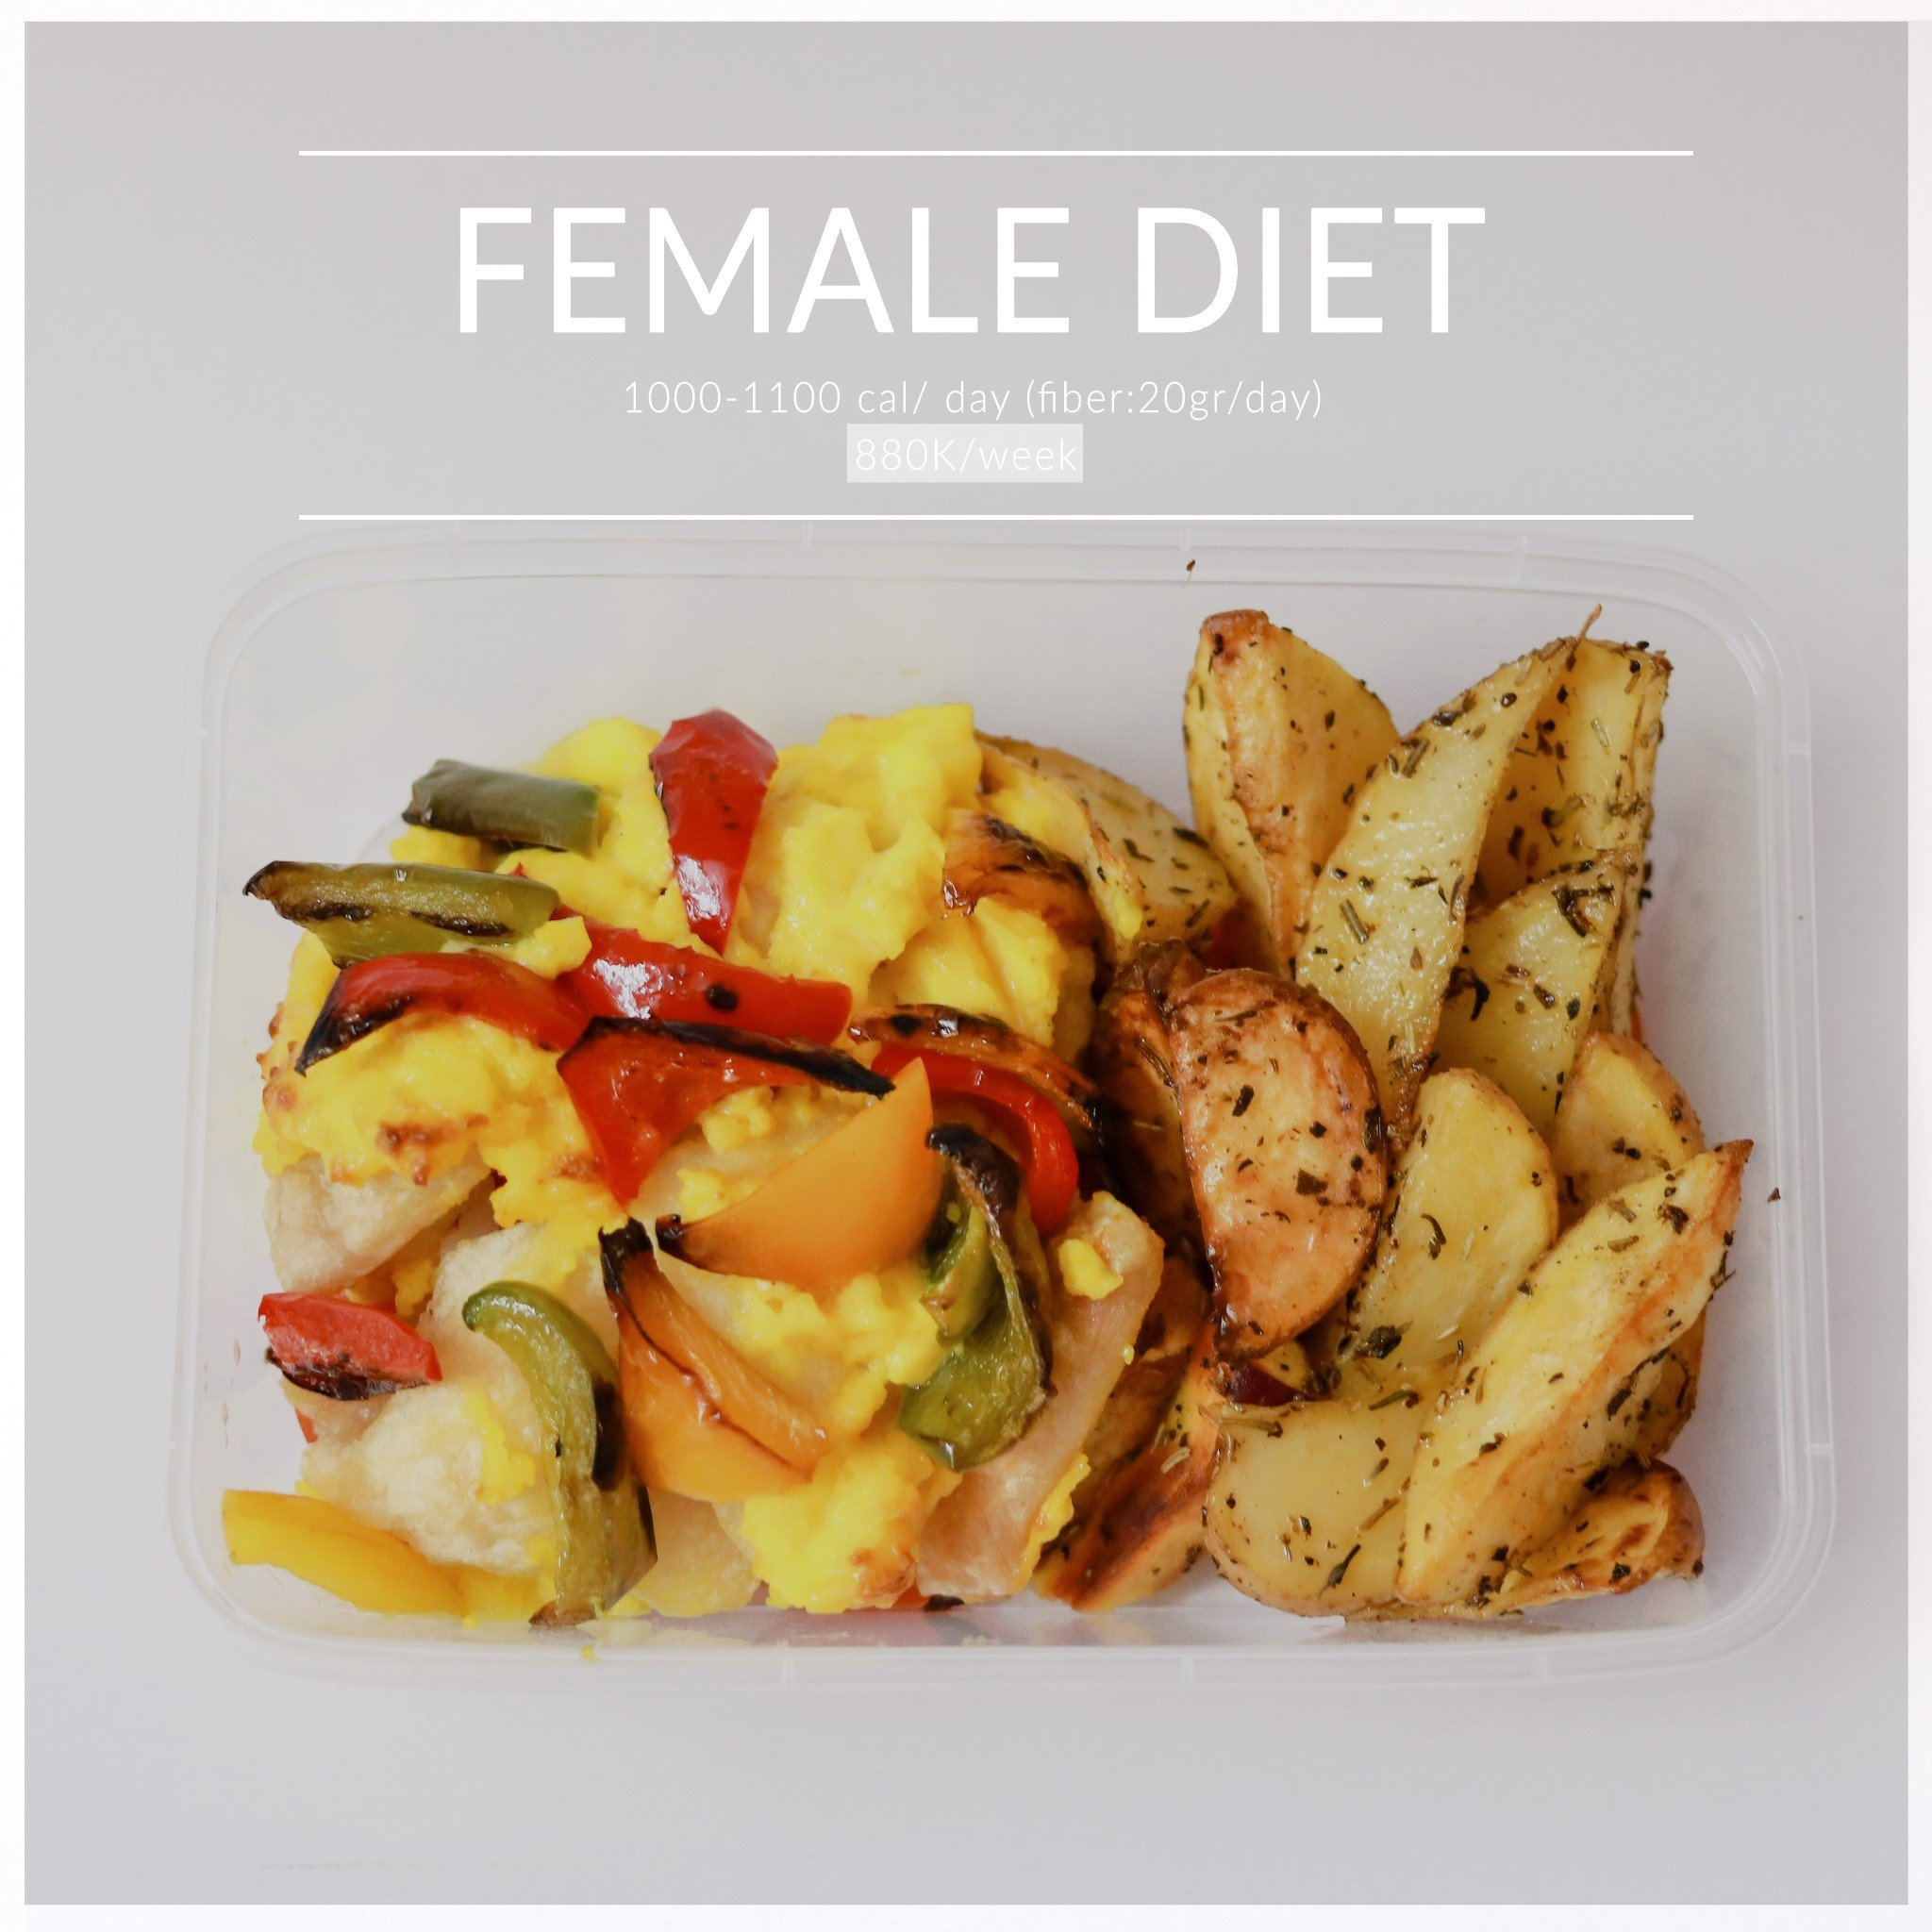 Female diet